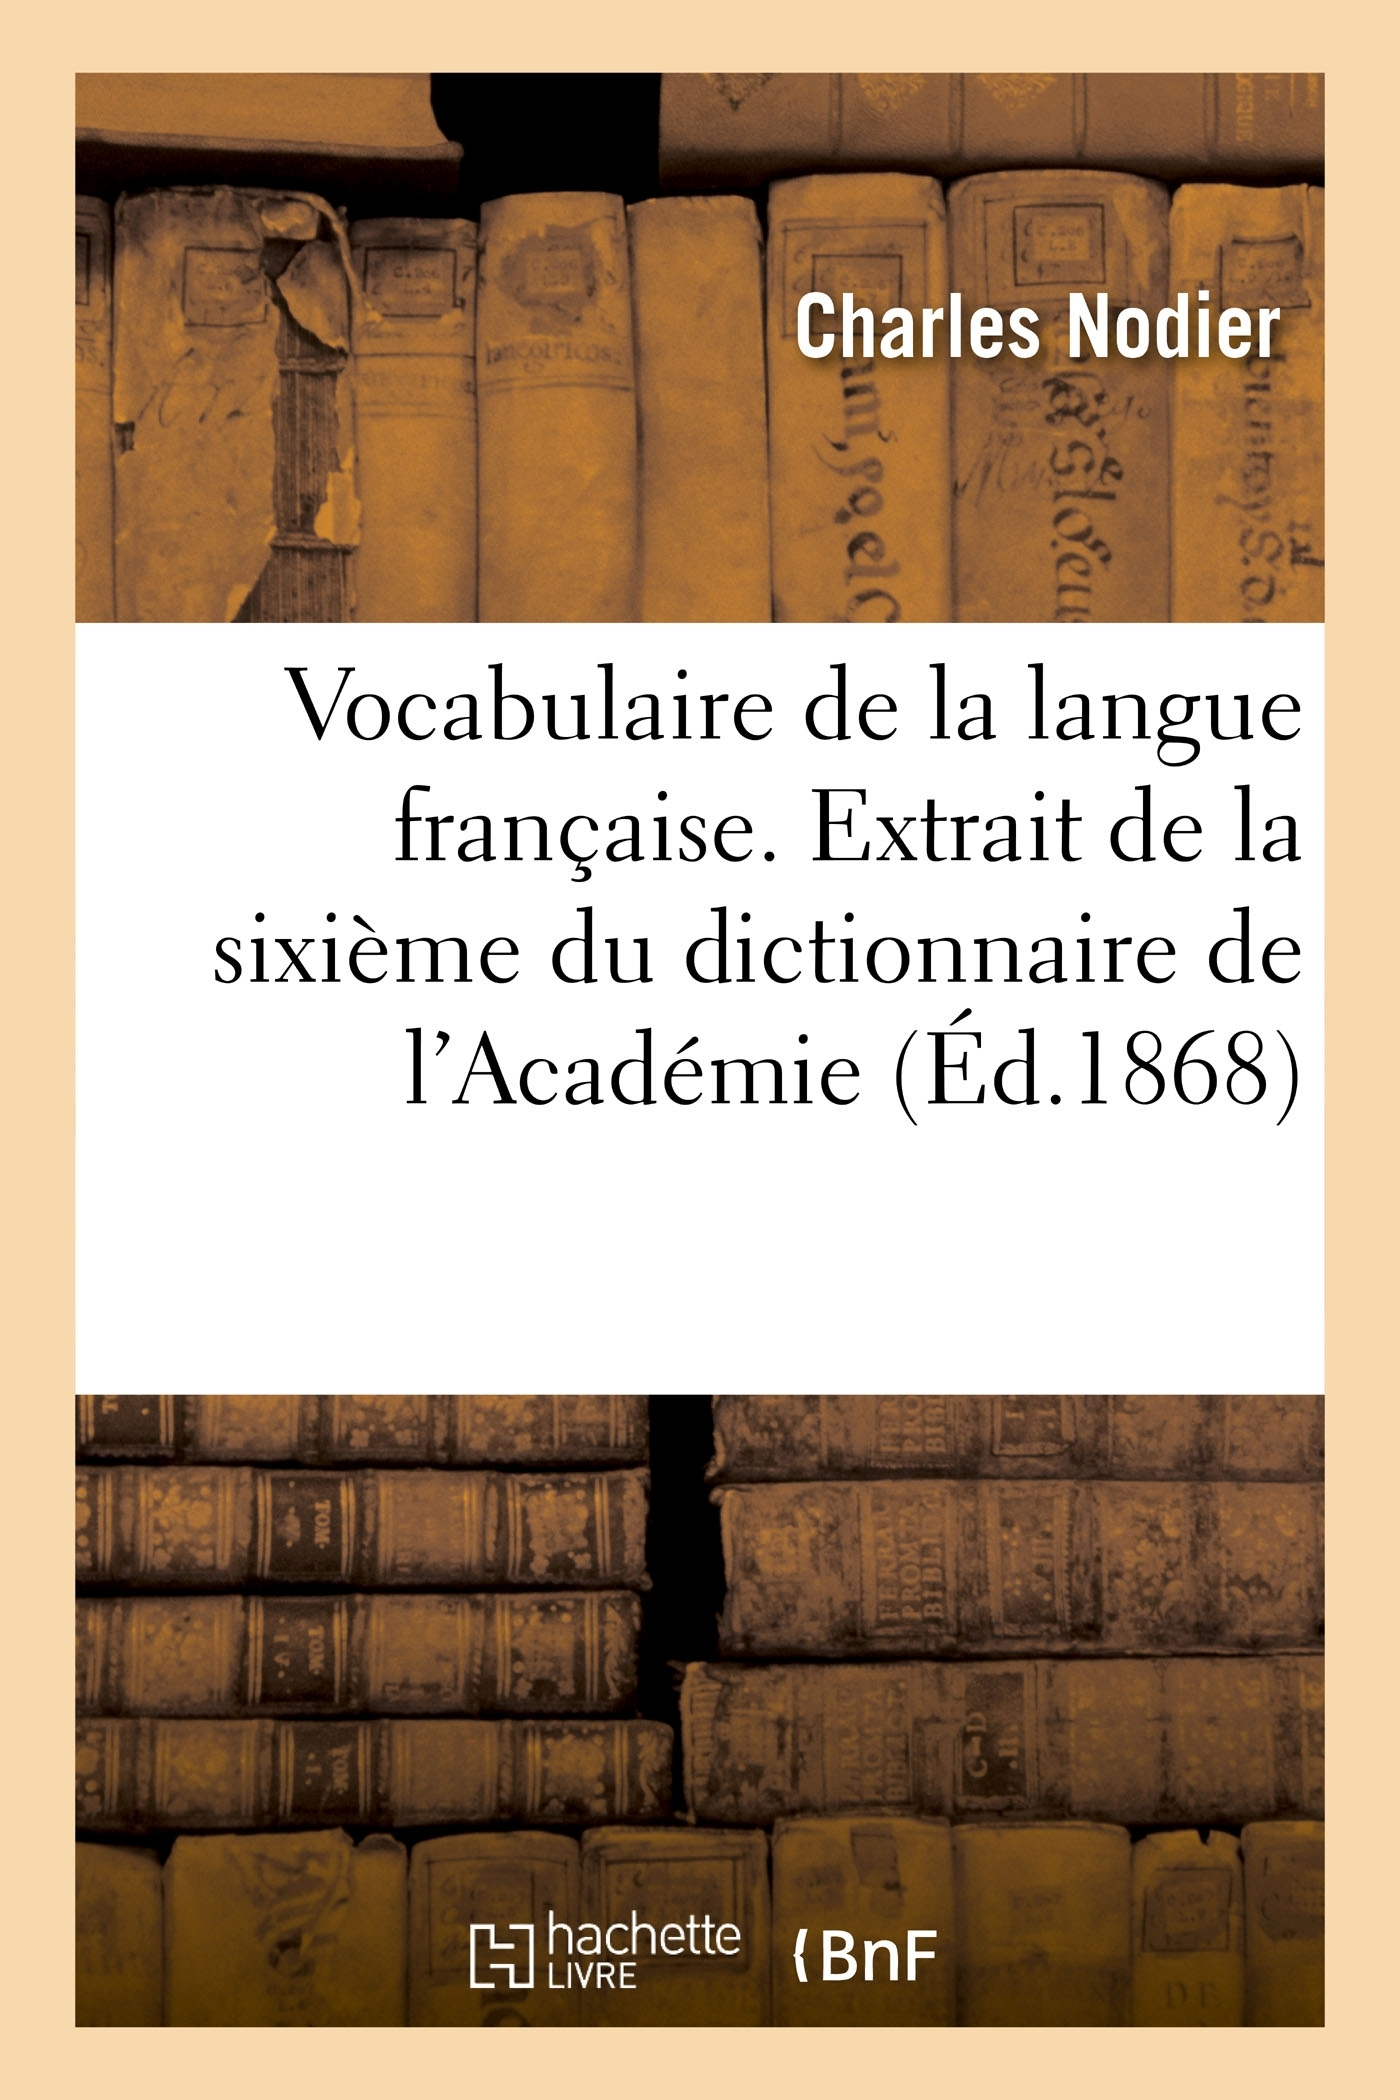 VOCABULAIRE DE LA LANGUE FRANCAISE